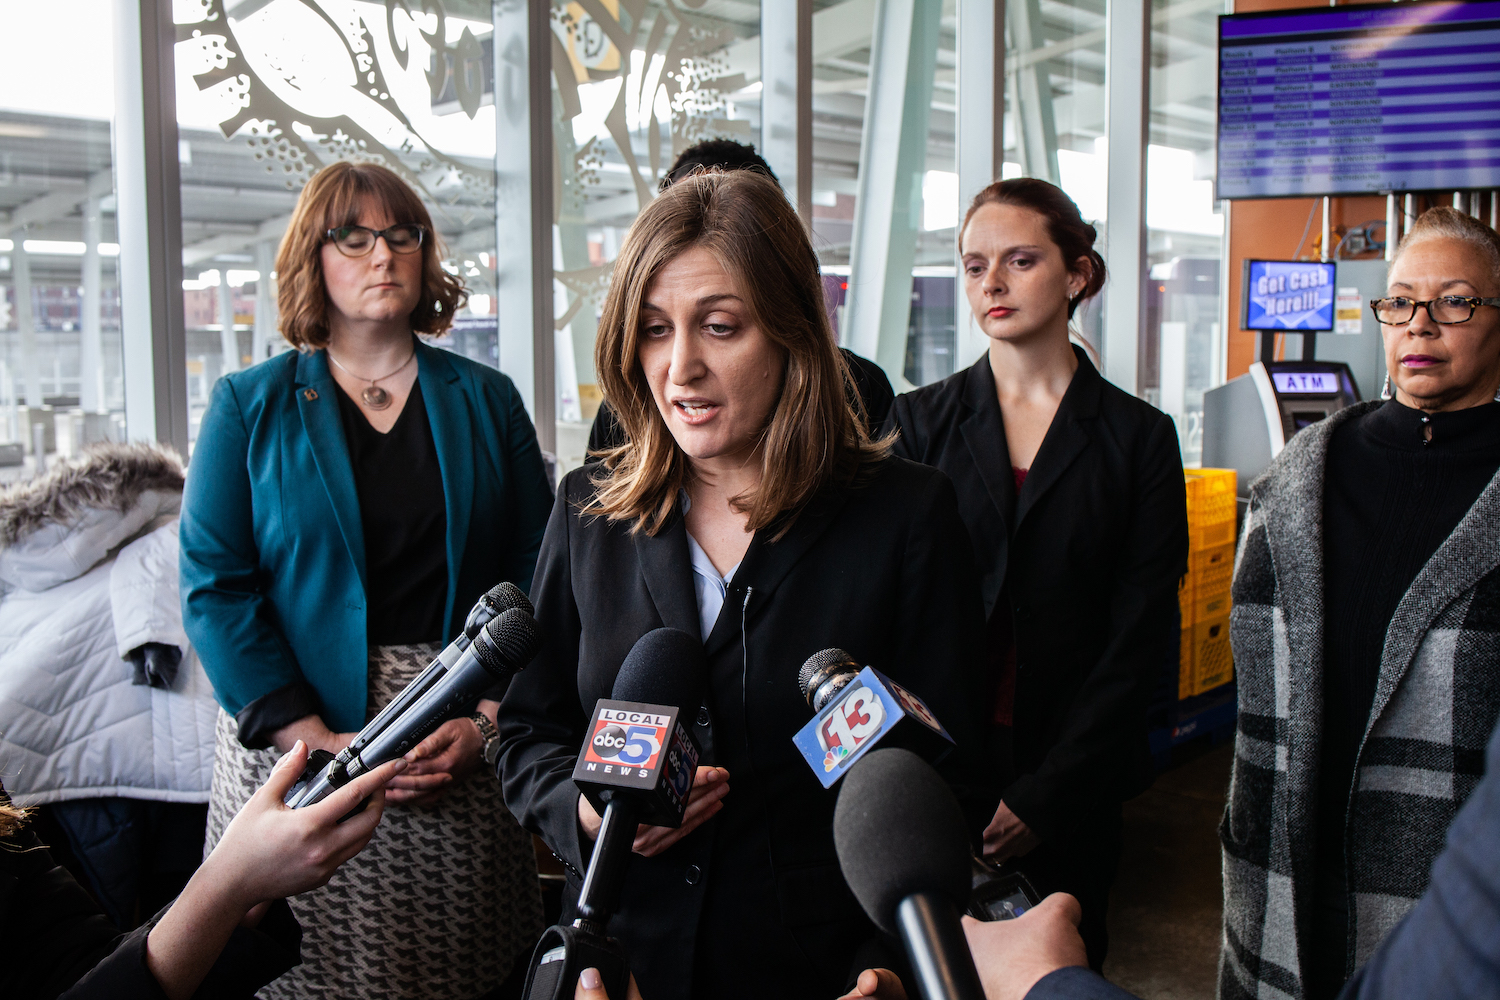 ACLU Legal Director Rita Betis speaks to the press following the Heartbeat Bill hearing at the Polk County Courthouse on Friday, Dec. 7, 2018.